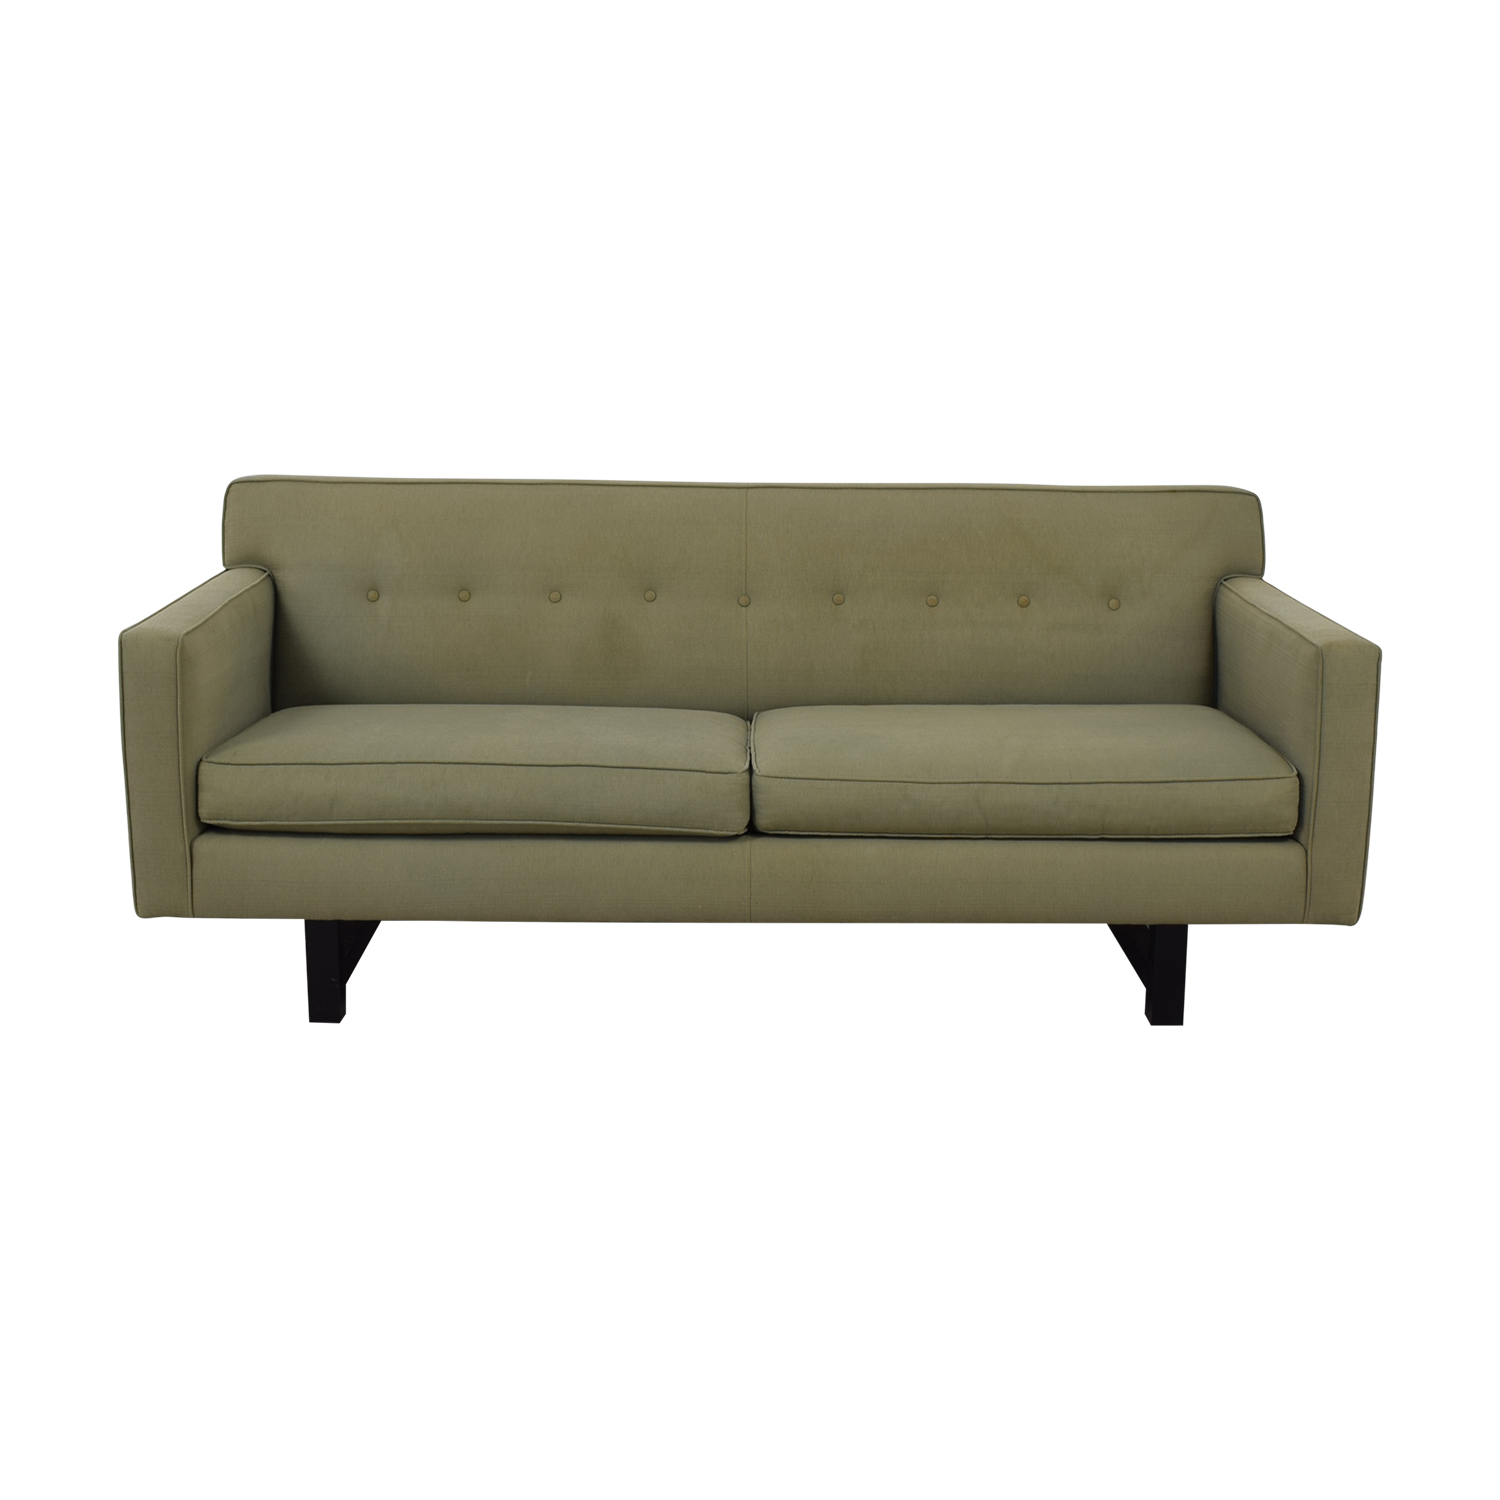 shop Room & Board Room & Board Andre Sofa online